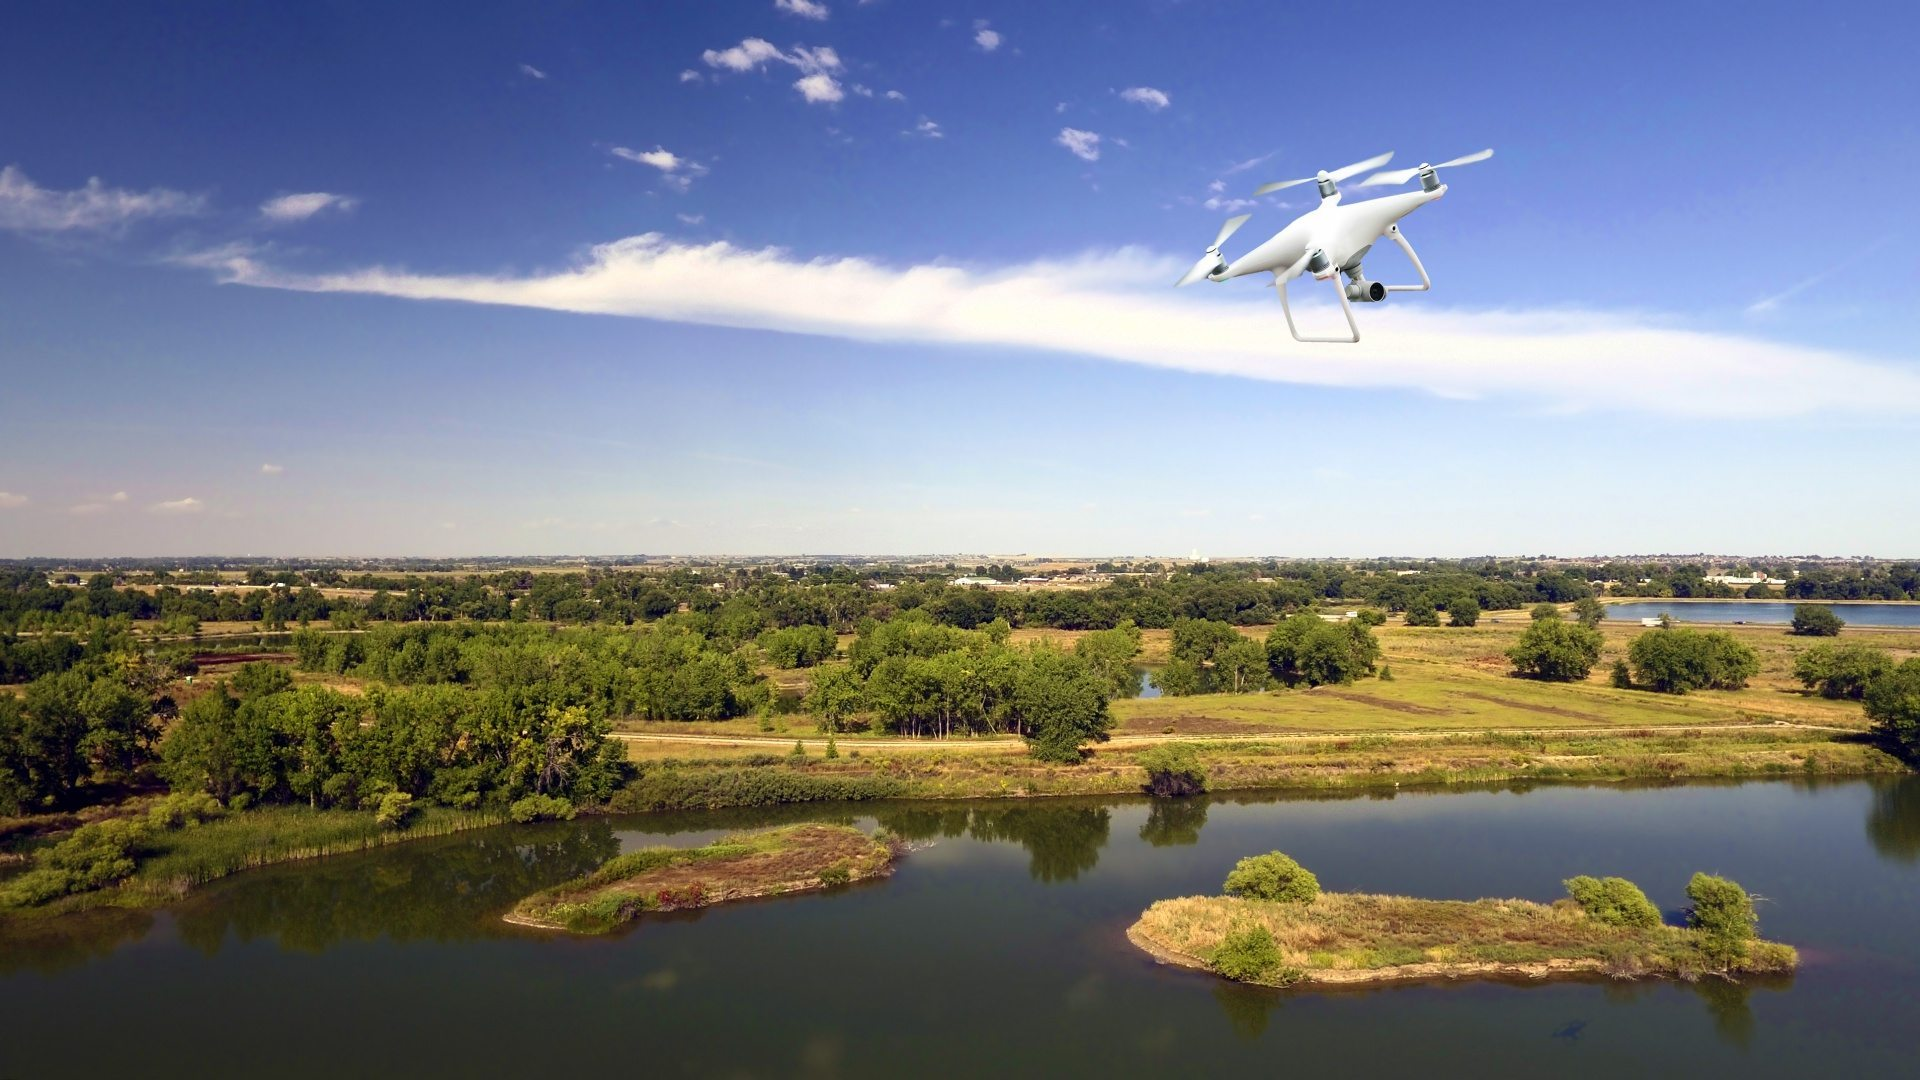 Flytrex is using drones for different purposes, such as delivering packages